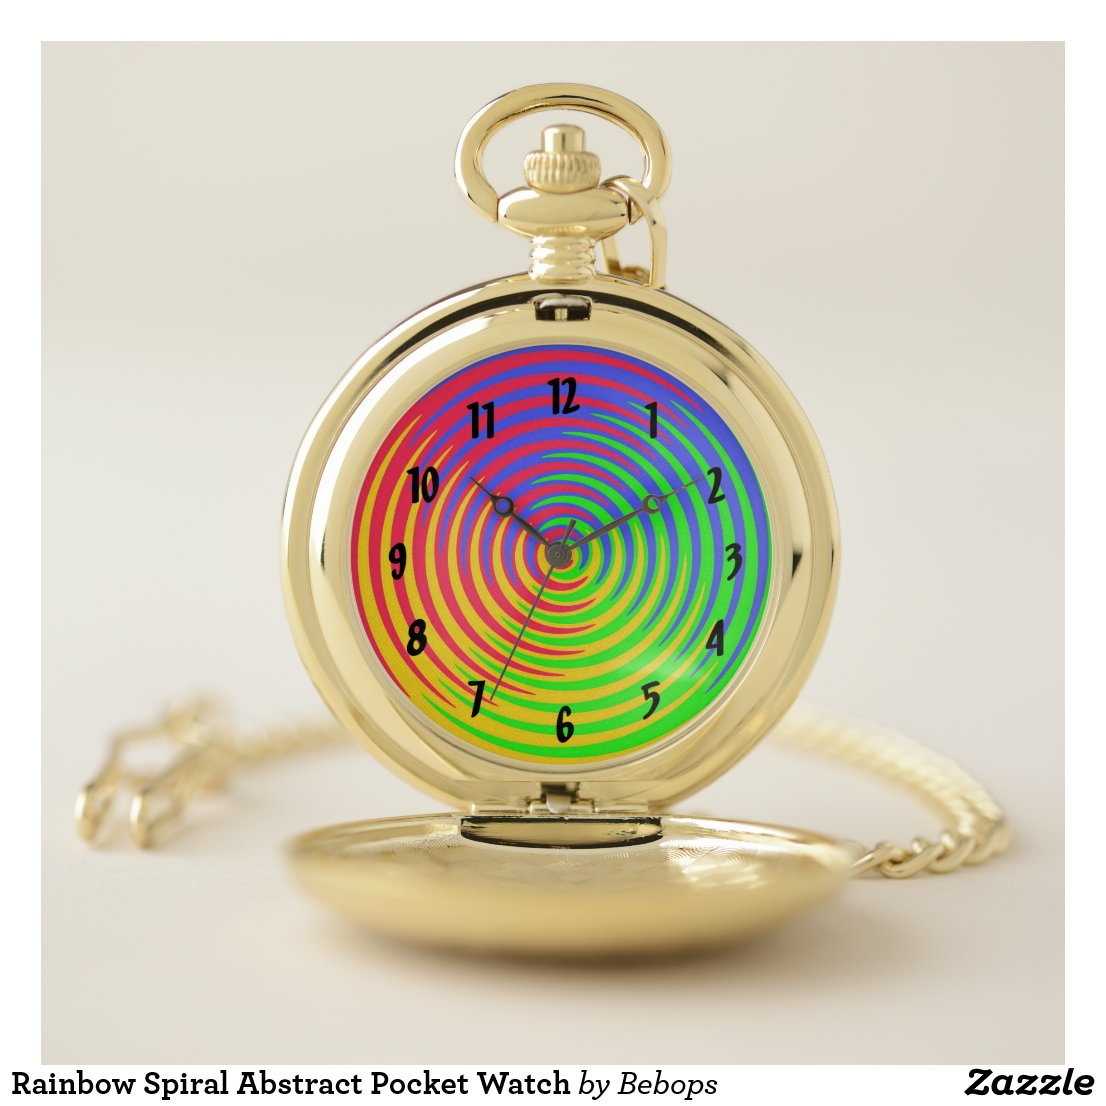 Rainbow Spiral Abstract Pocket Watch